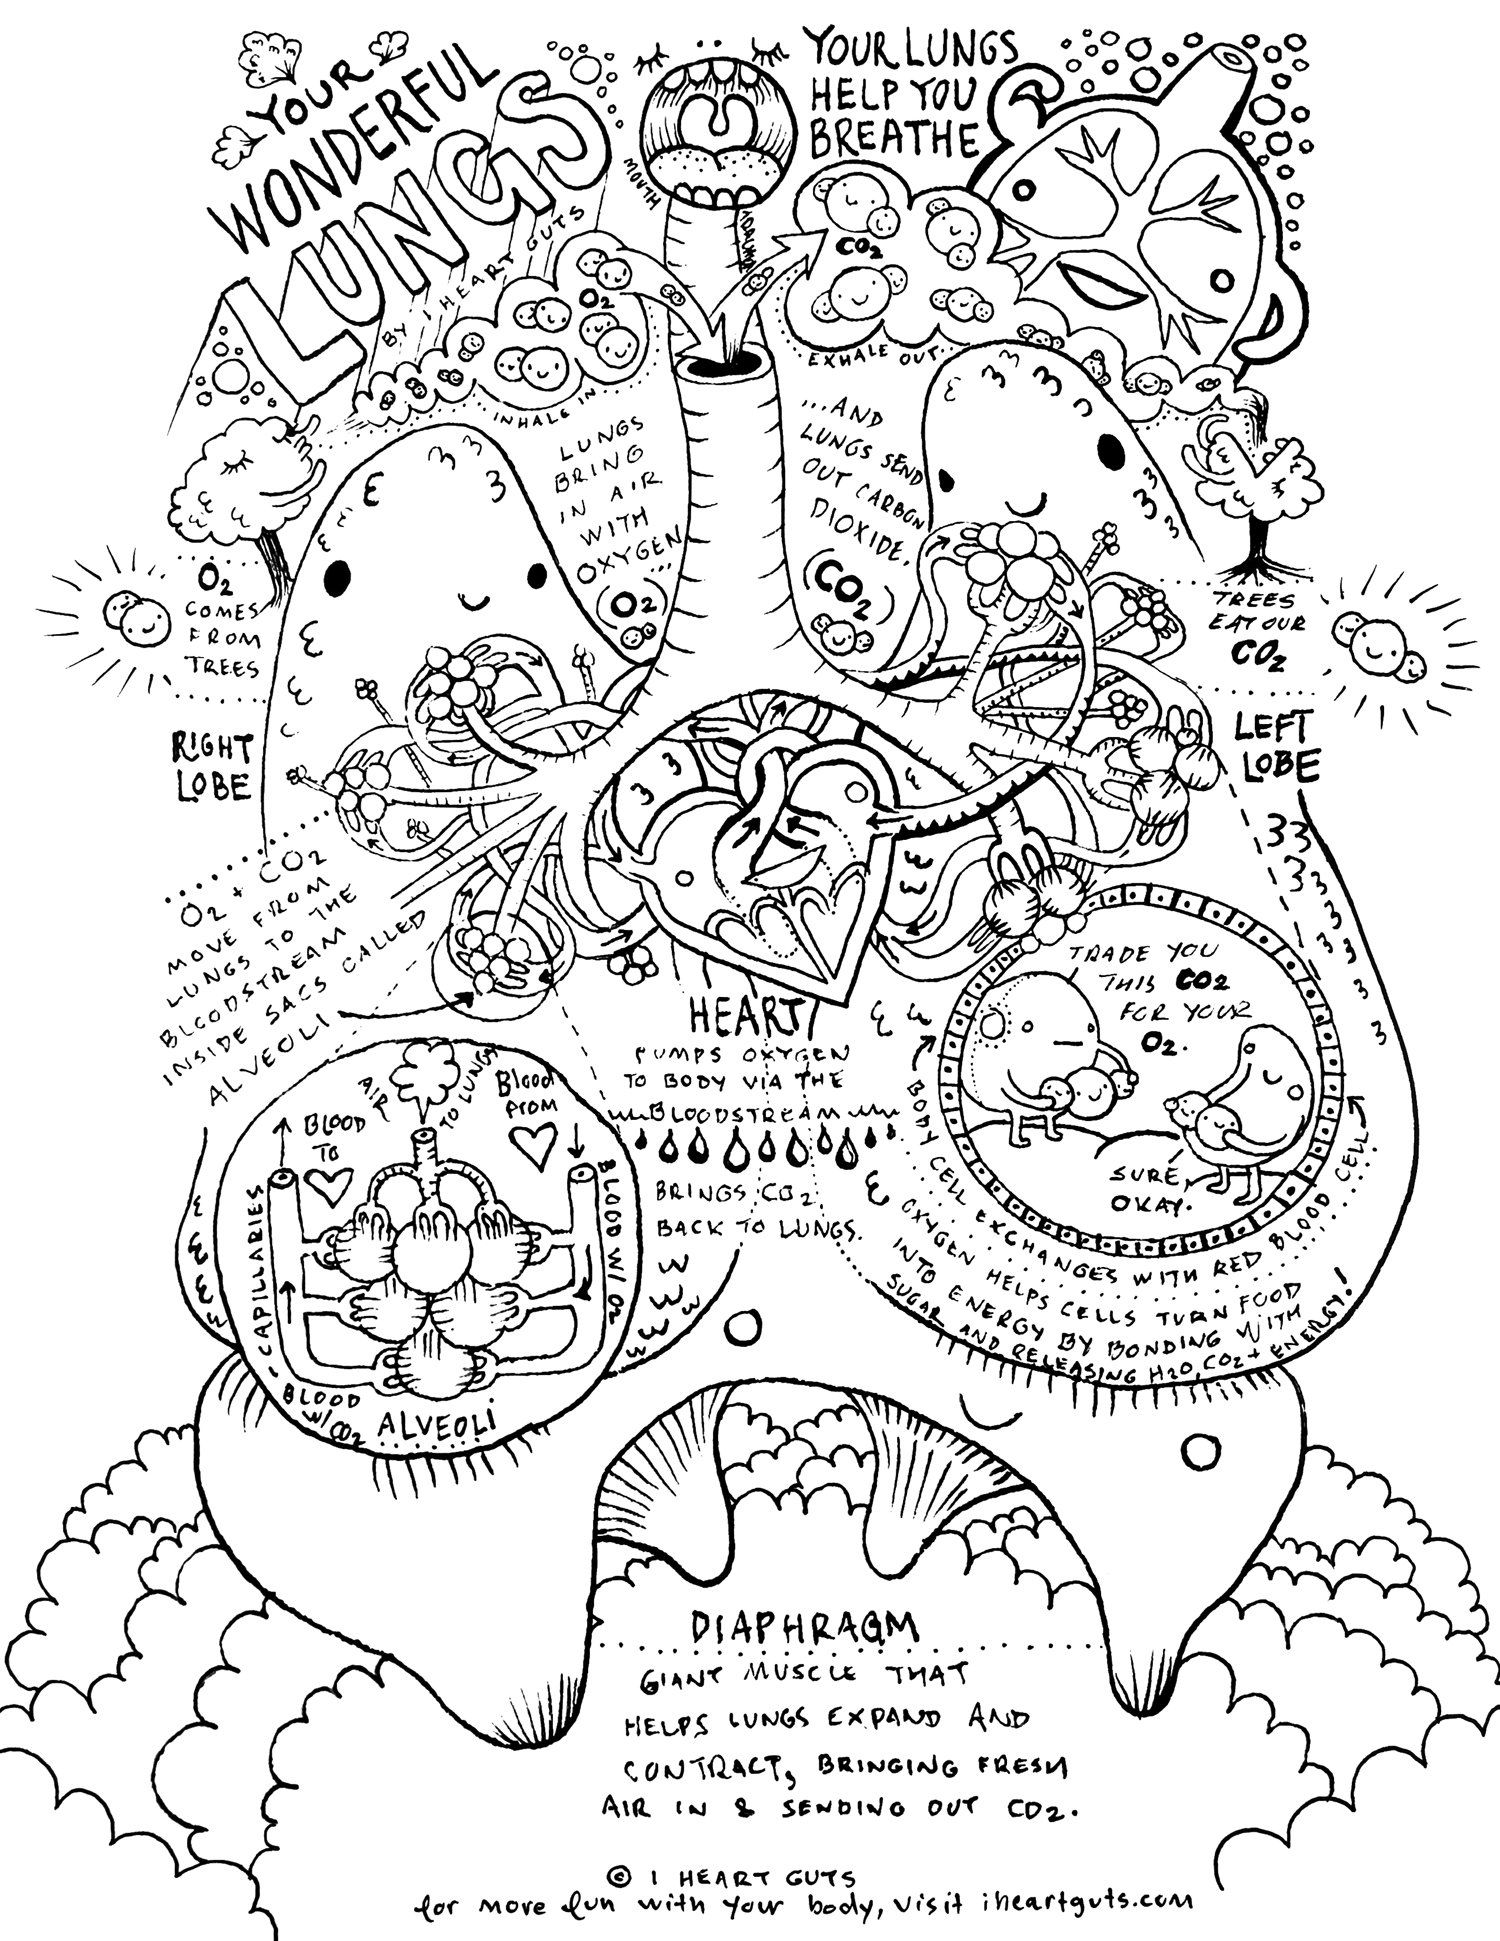 Respiratory System Coloring Page   Anatomy coloring book ...